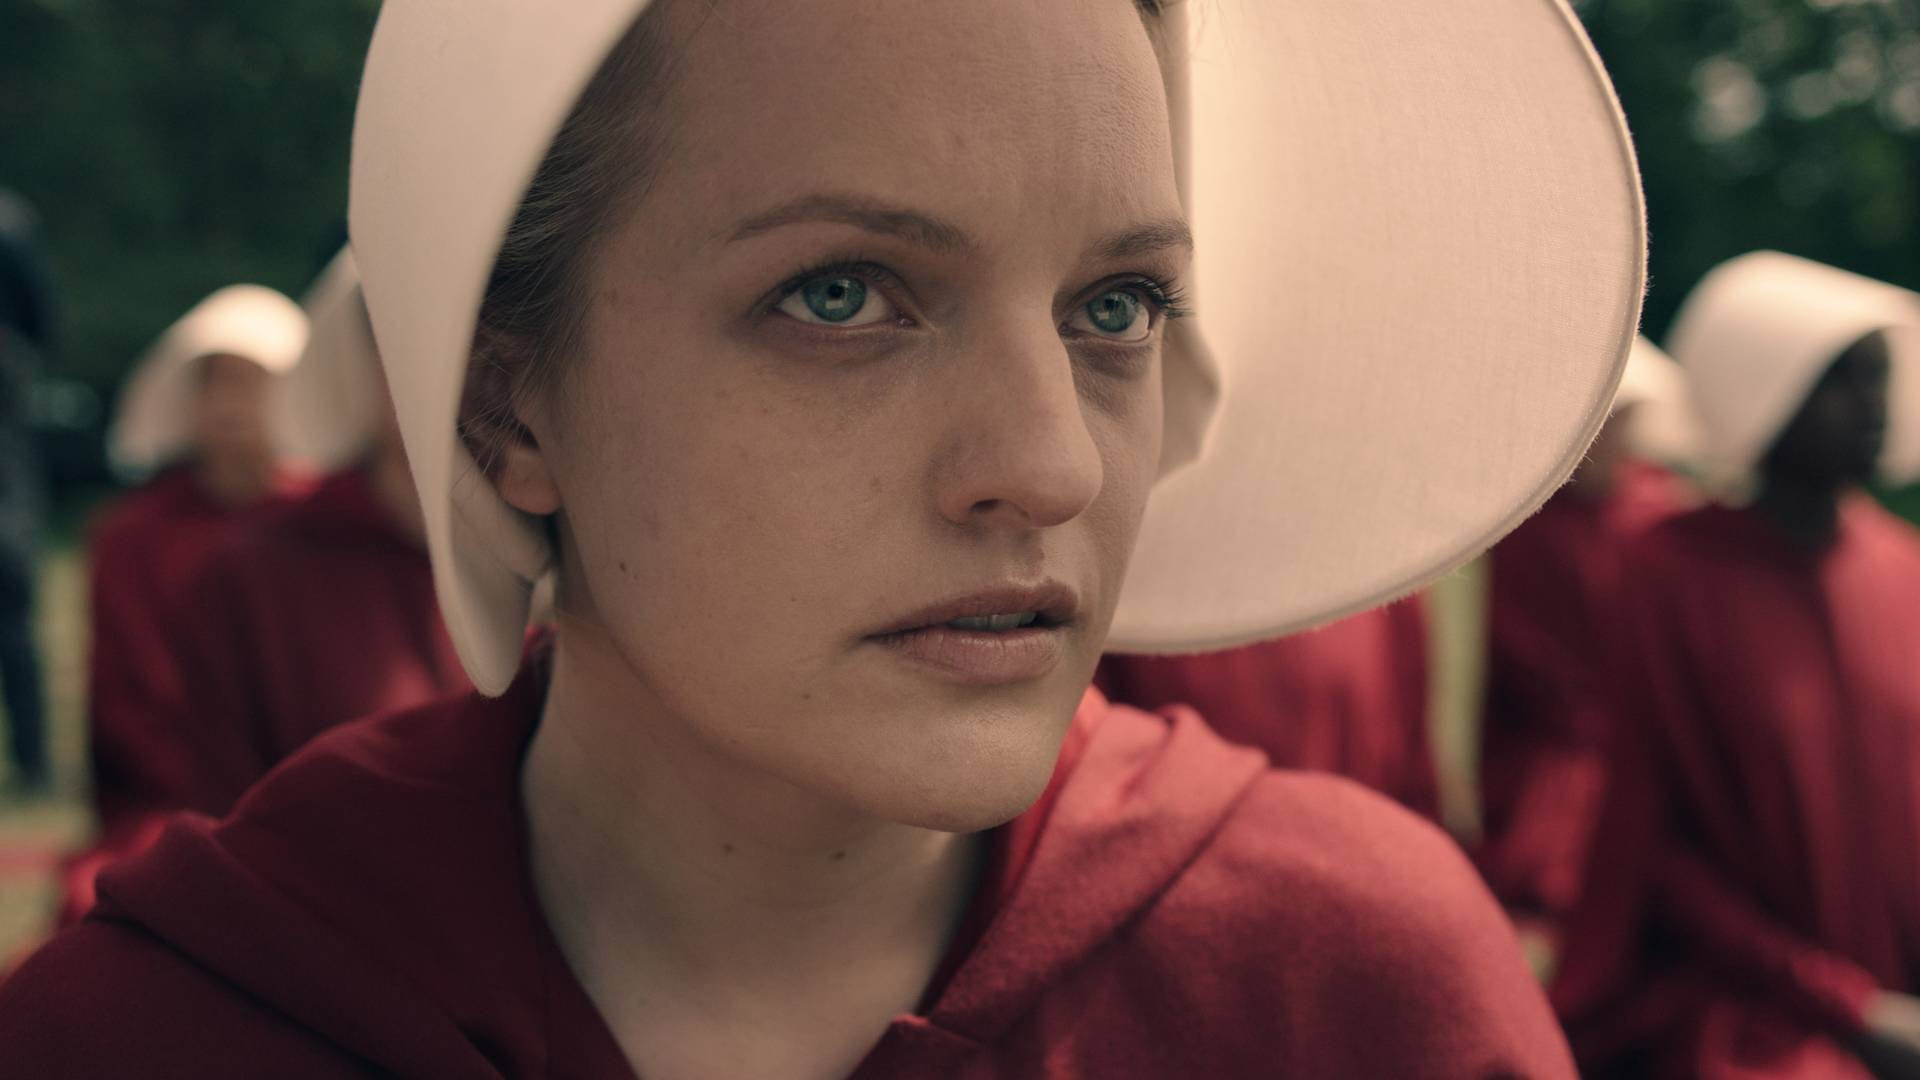 The winners and losers at the 2017 Emmys: Hulu's 'The Handmaid's Tale' scoops up top drama award and Netflix's 'Stranger Things' fails to meet expectations.